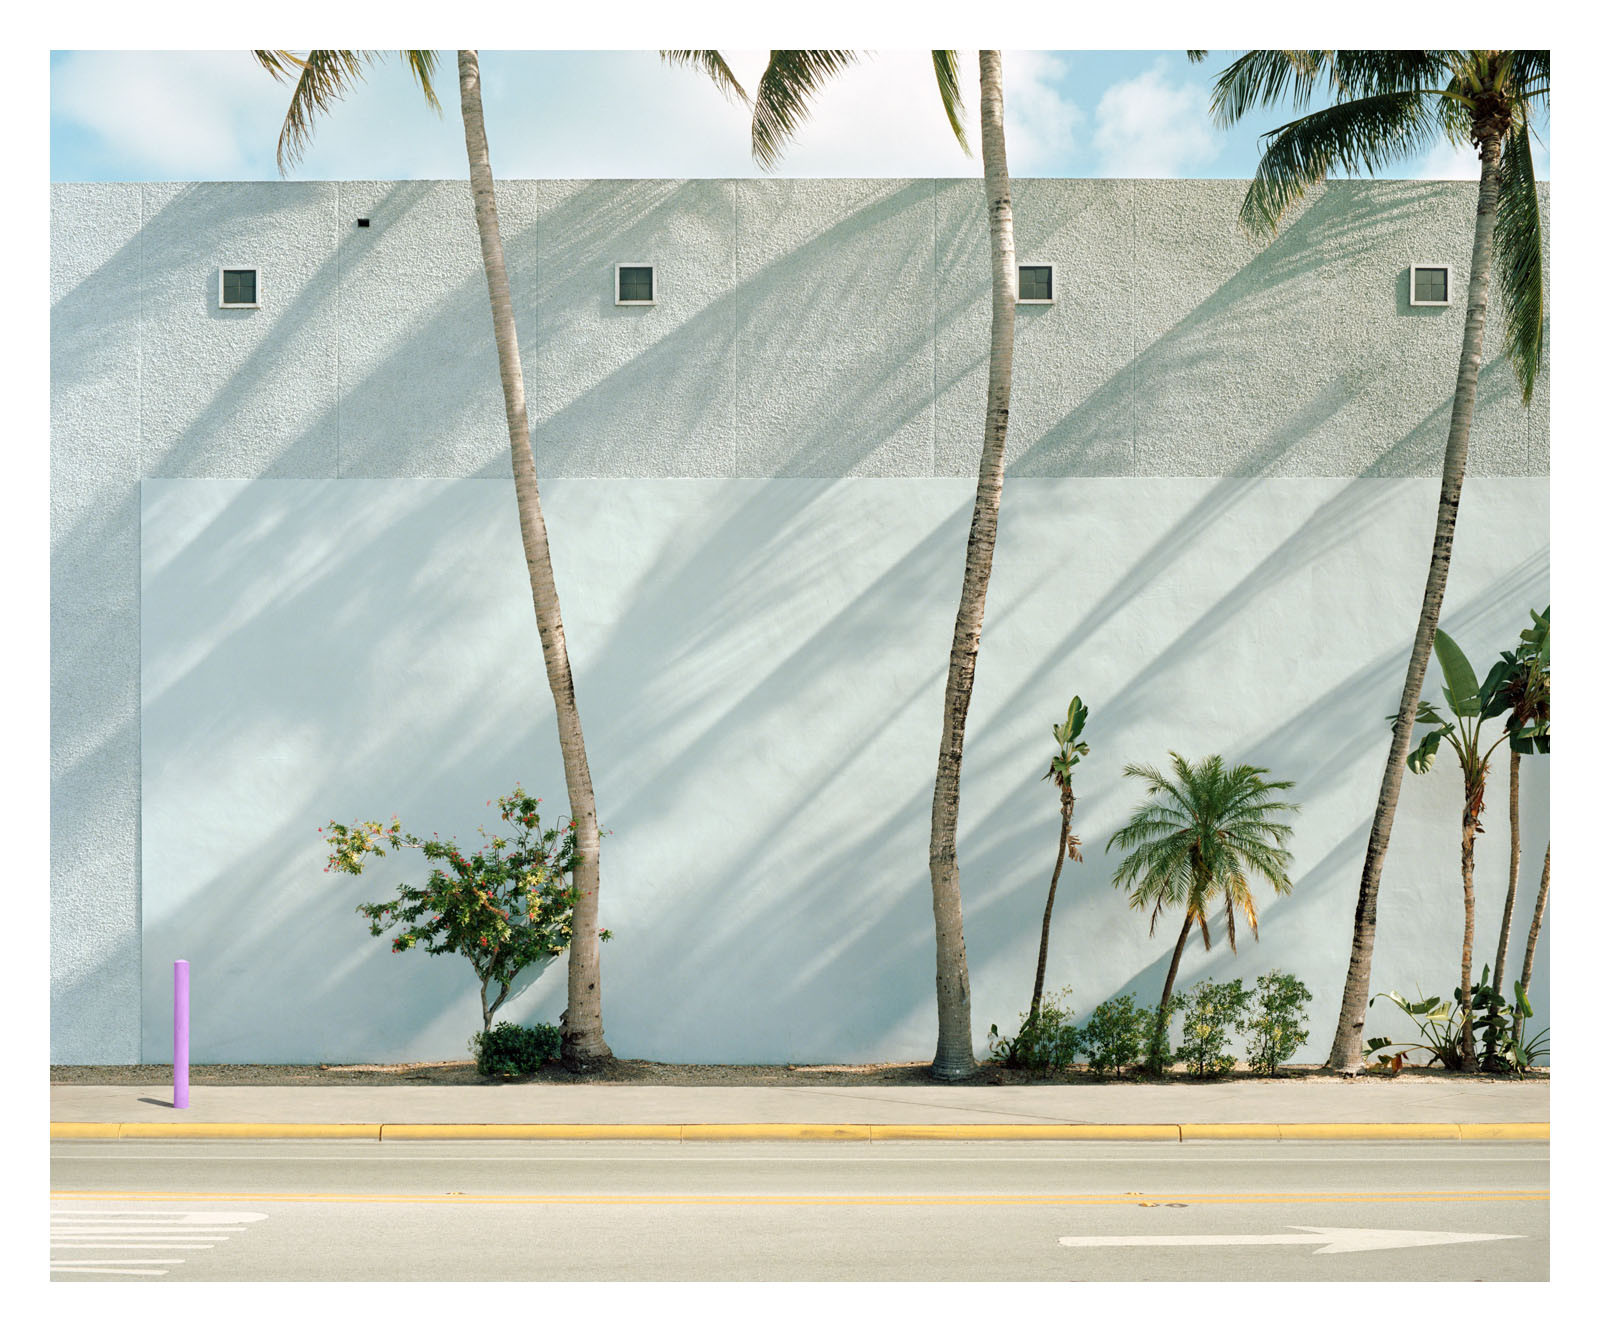 Green Wall Miami, 2019.jpg